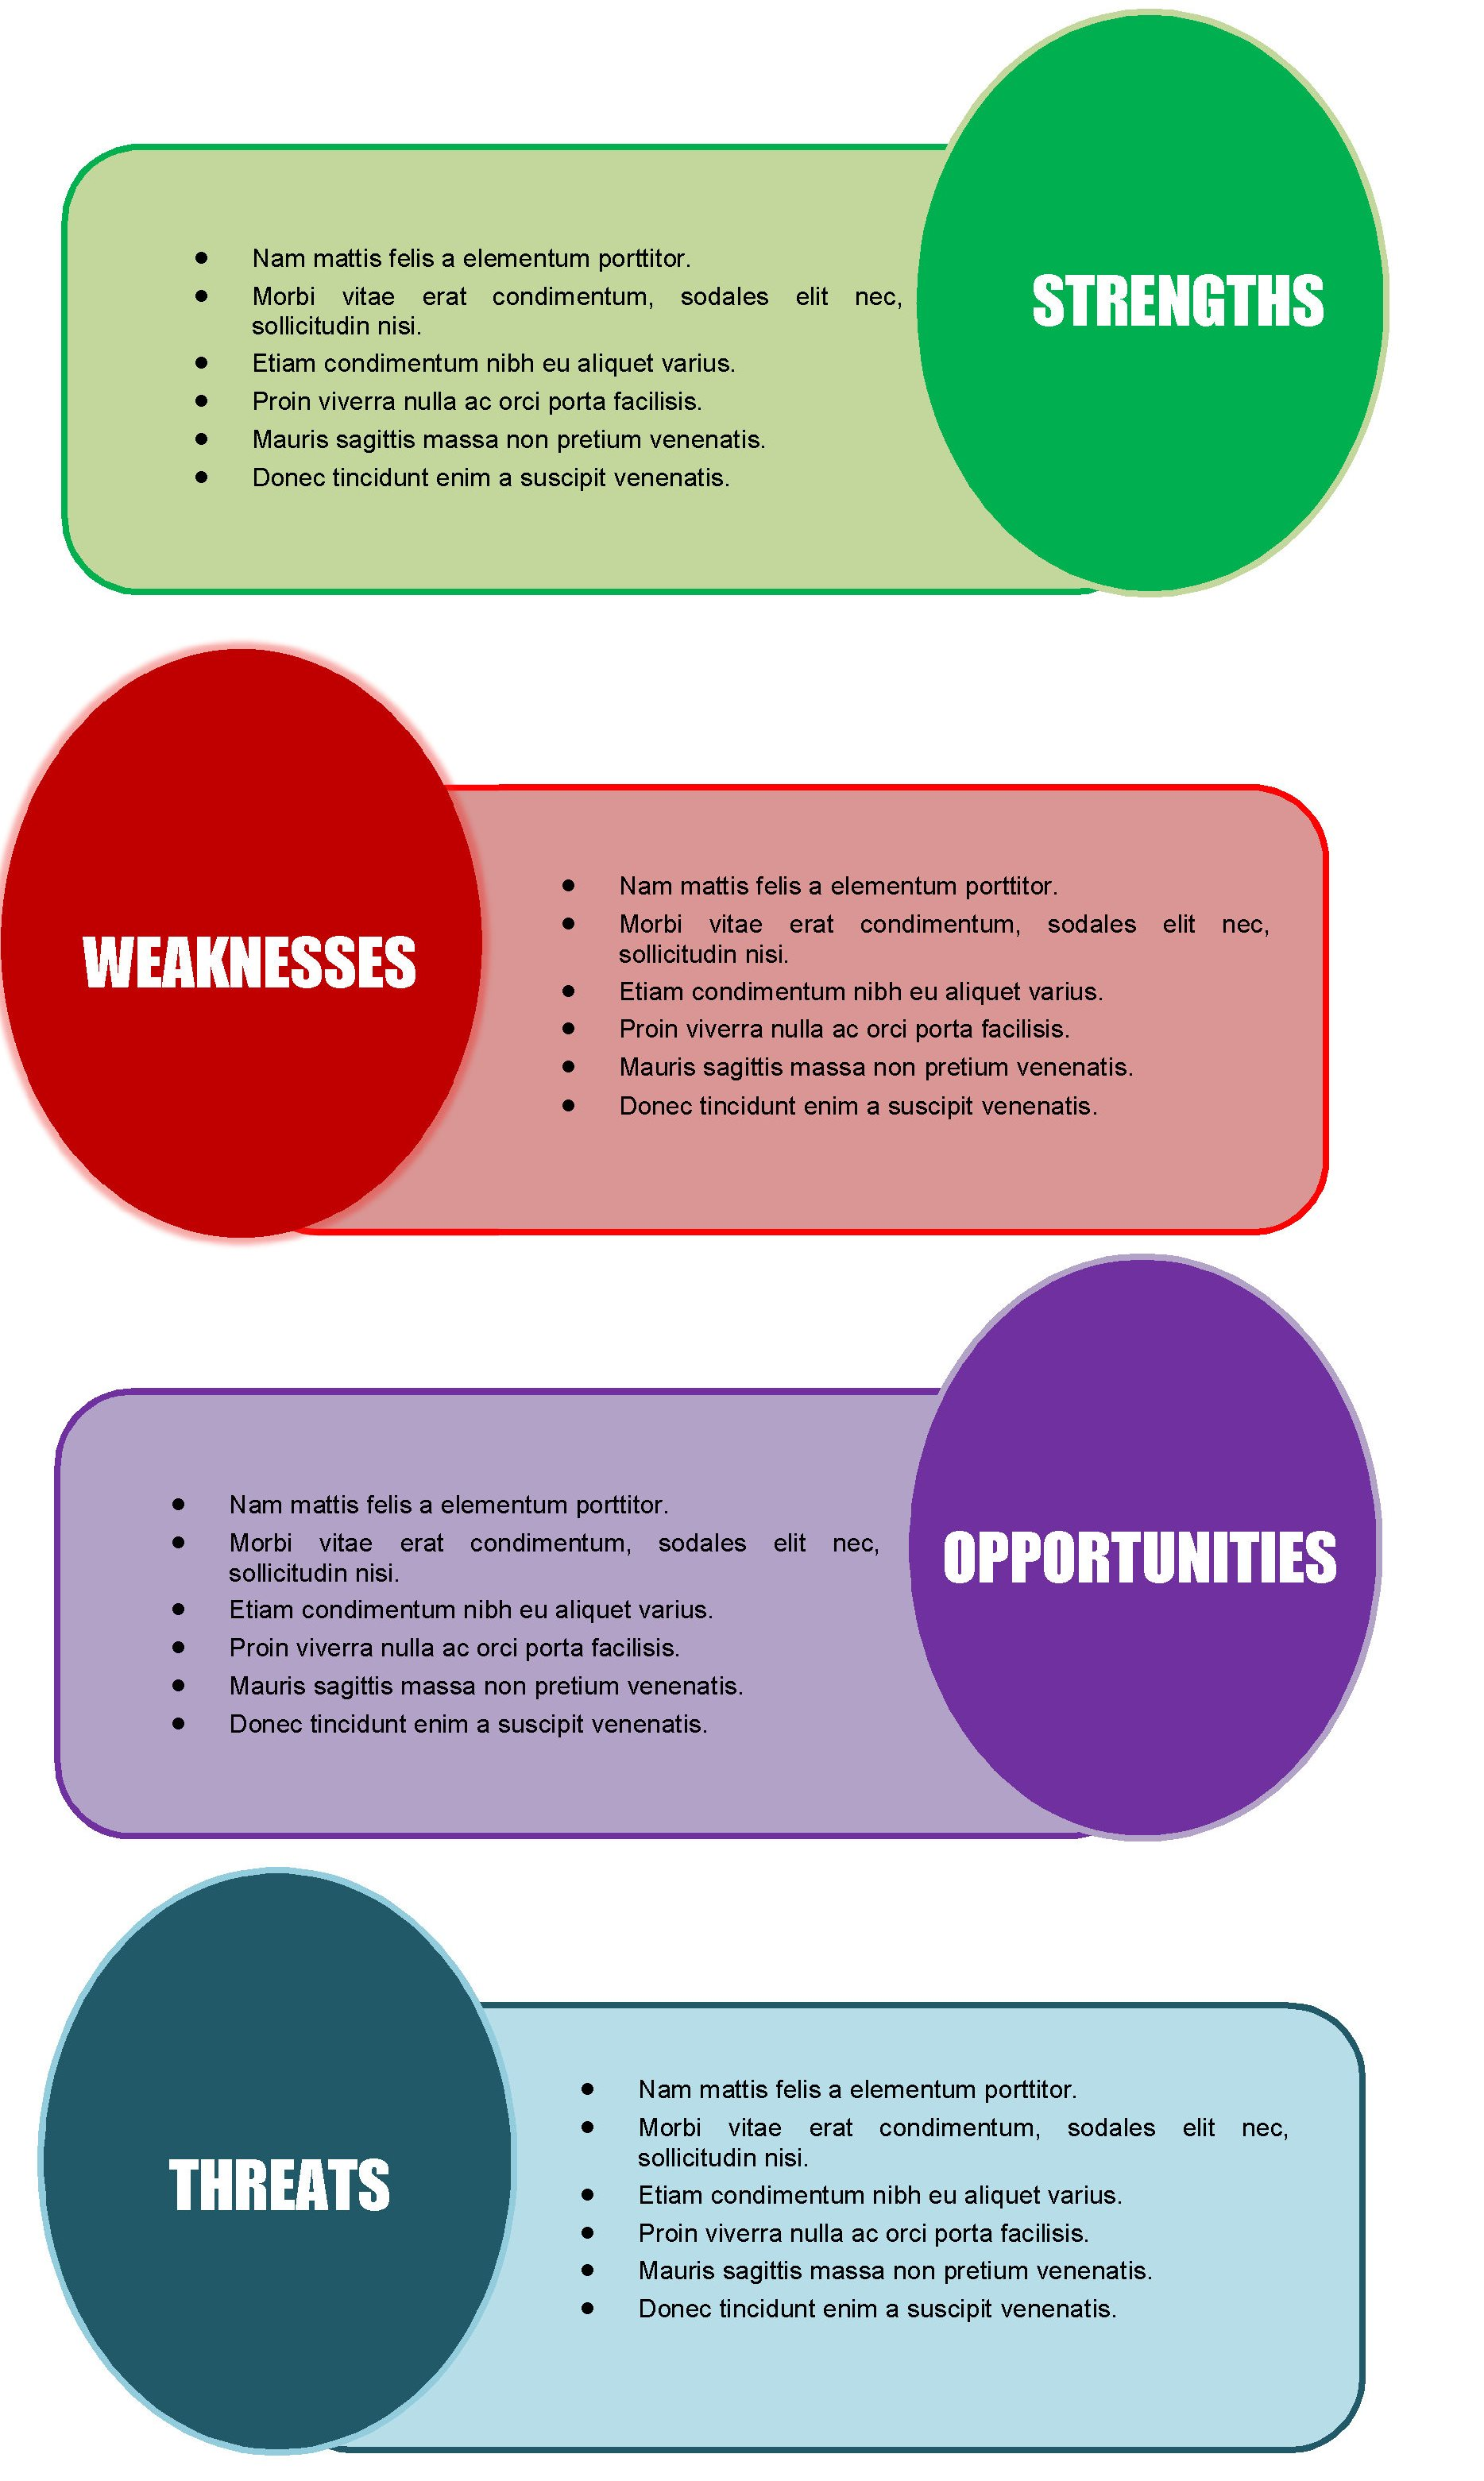 40 swot analysis templates in word demplates swot template 20 21 microsoft word swot analysis template